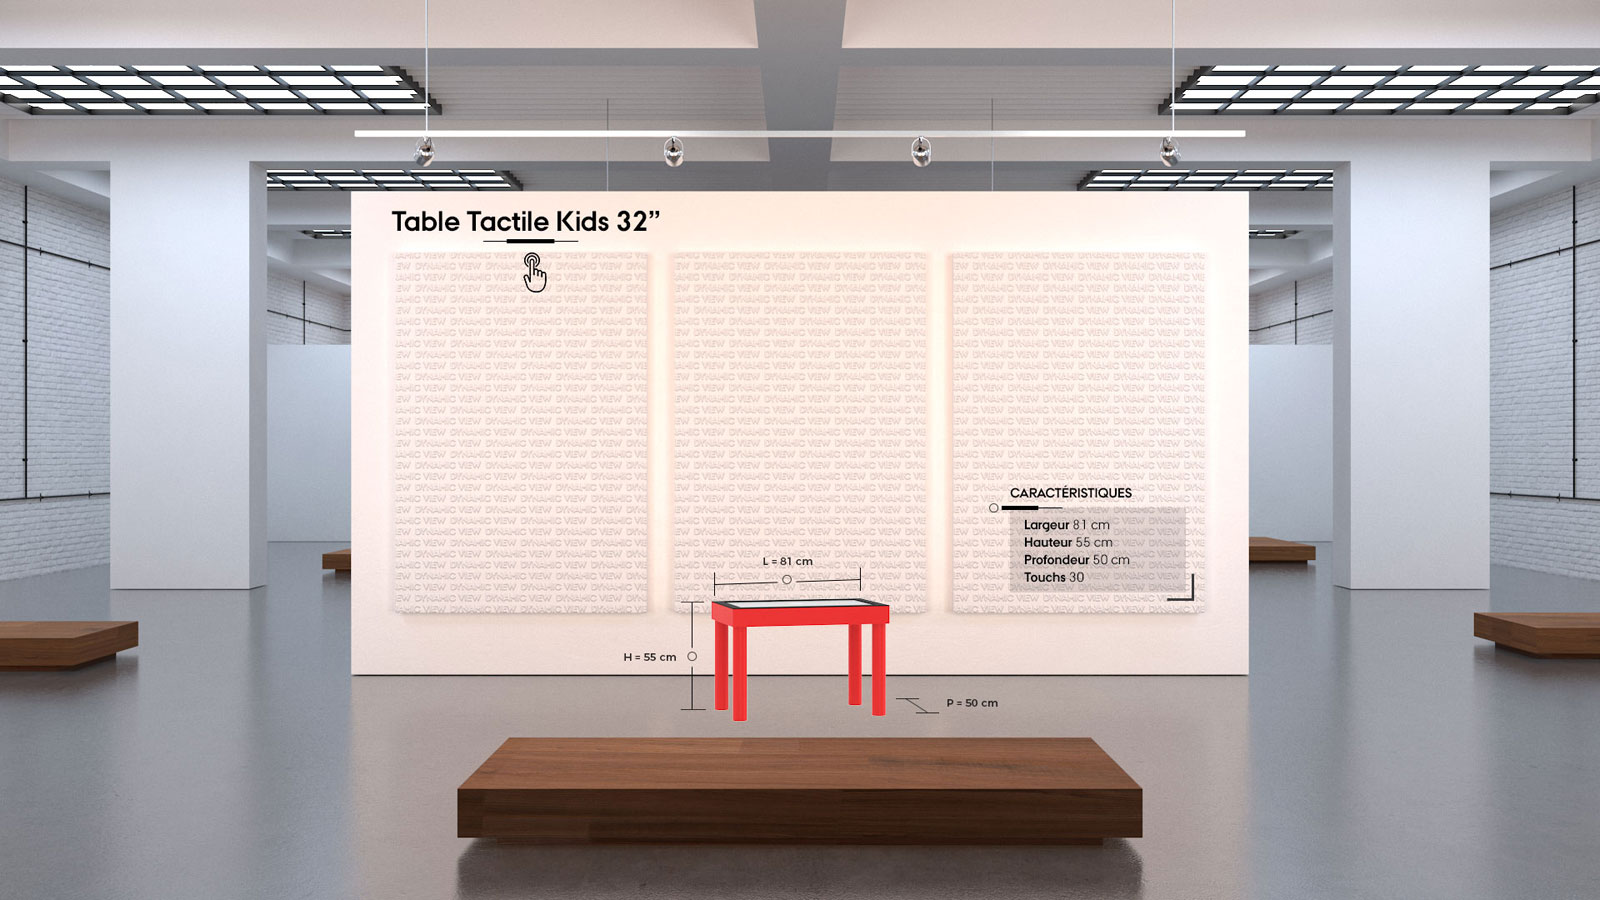 38 Table Tactile Kids 32''